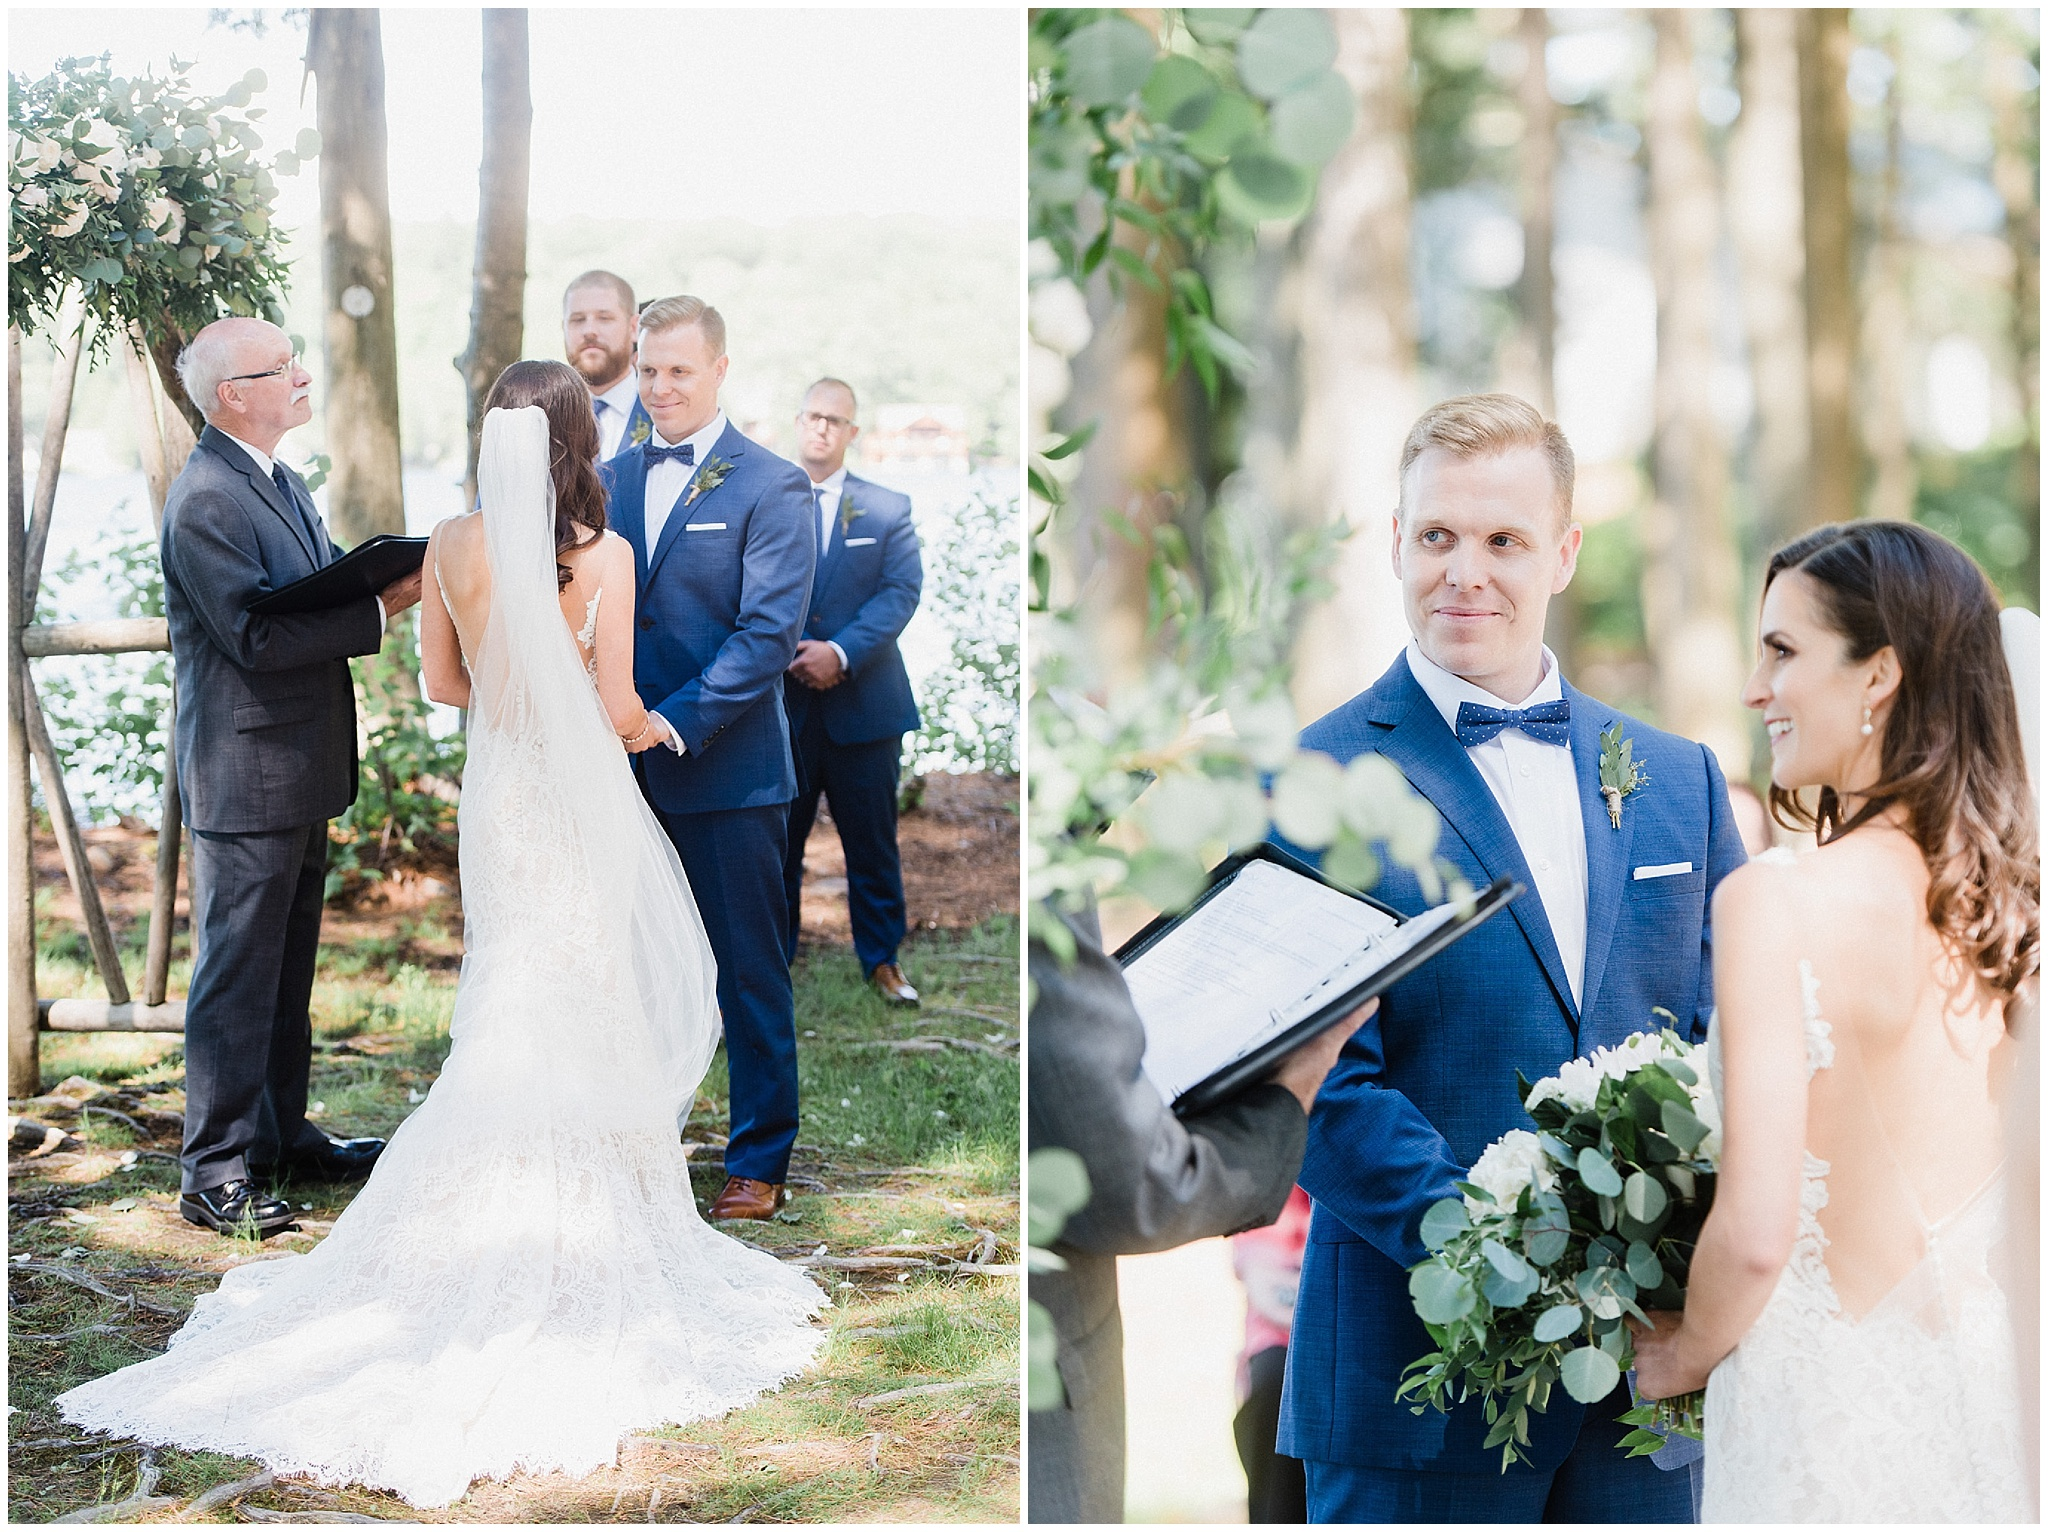 Outdoor ceremony at Sherwood Inn by Jenn Kavanagh Photography